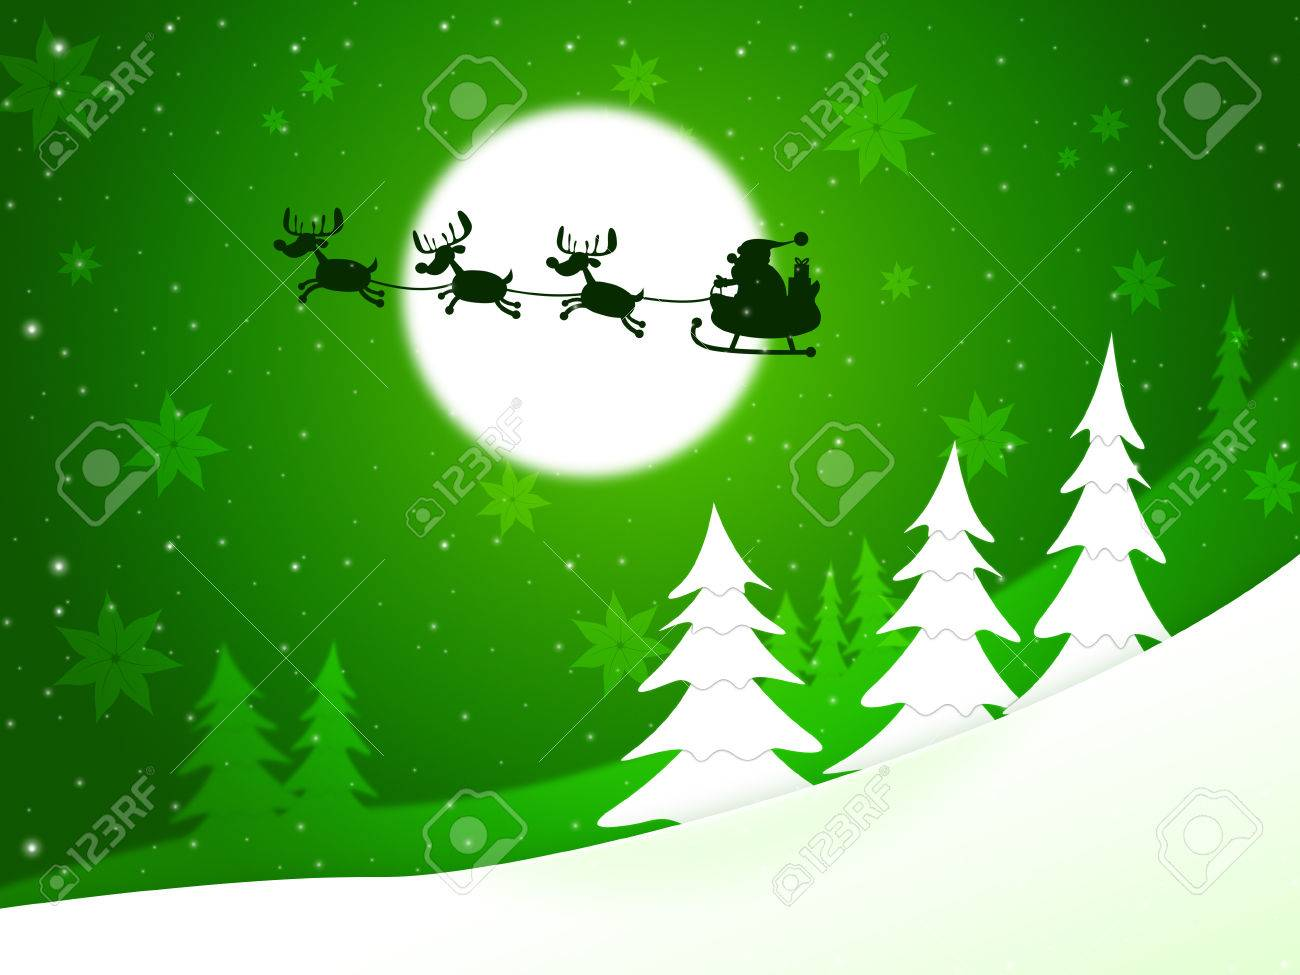 Xmas Tree Meaning Father Christmas And X-Mas Stock Photo, Picture ...